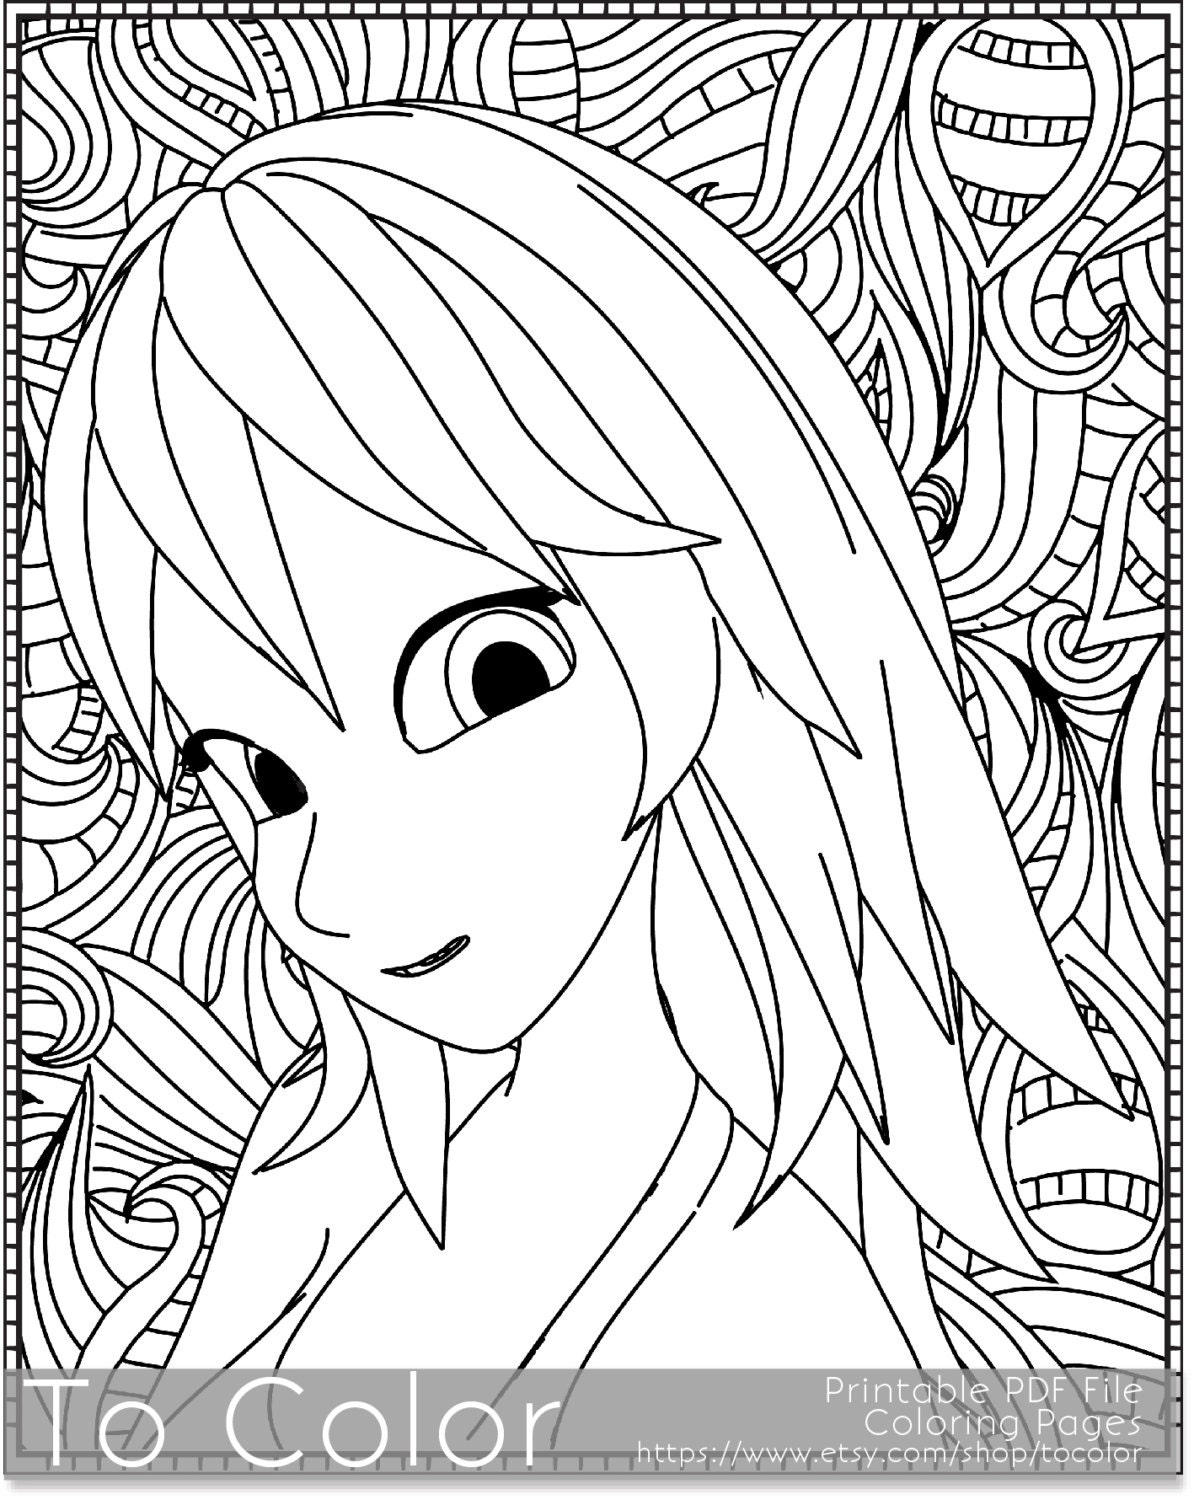 Retro Girl Printable Coloring Pages